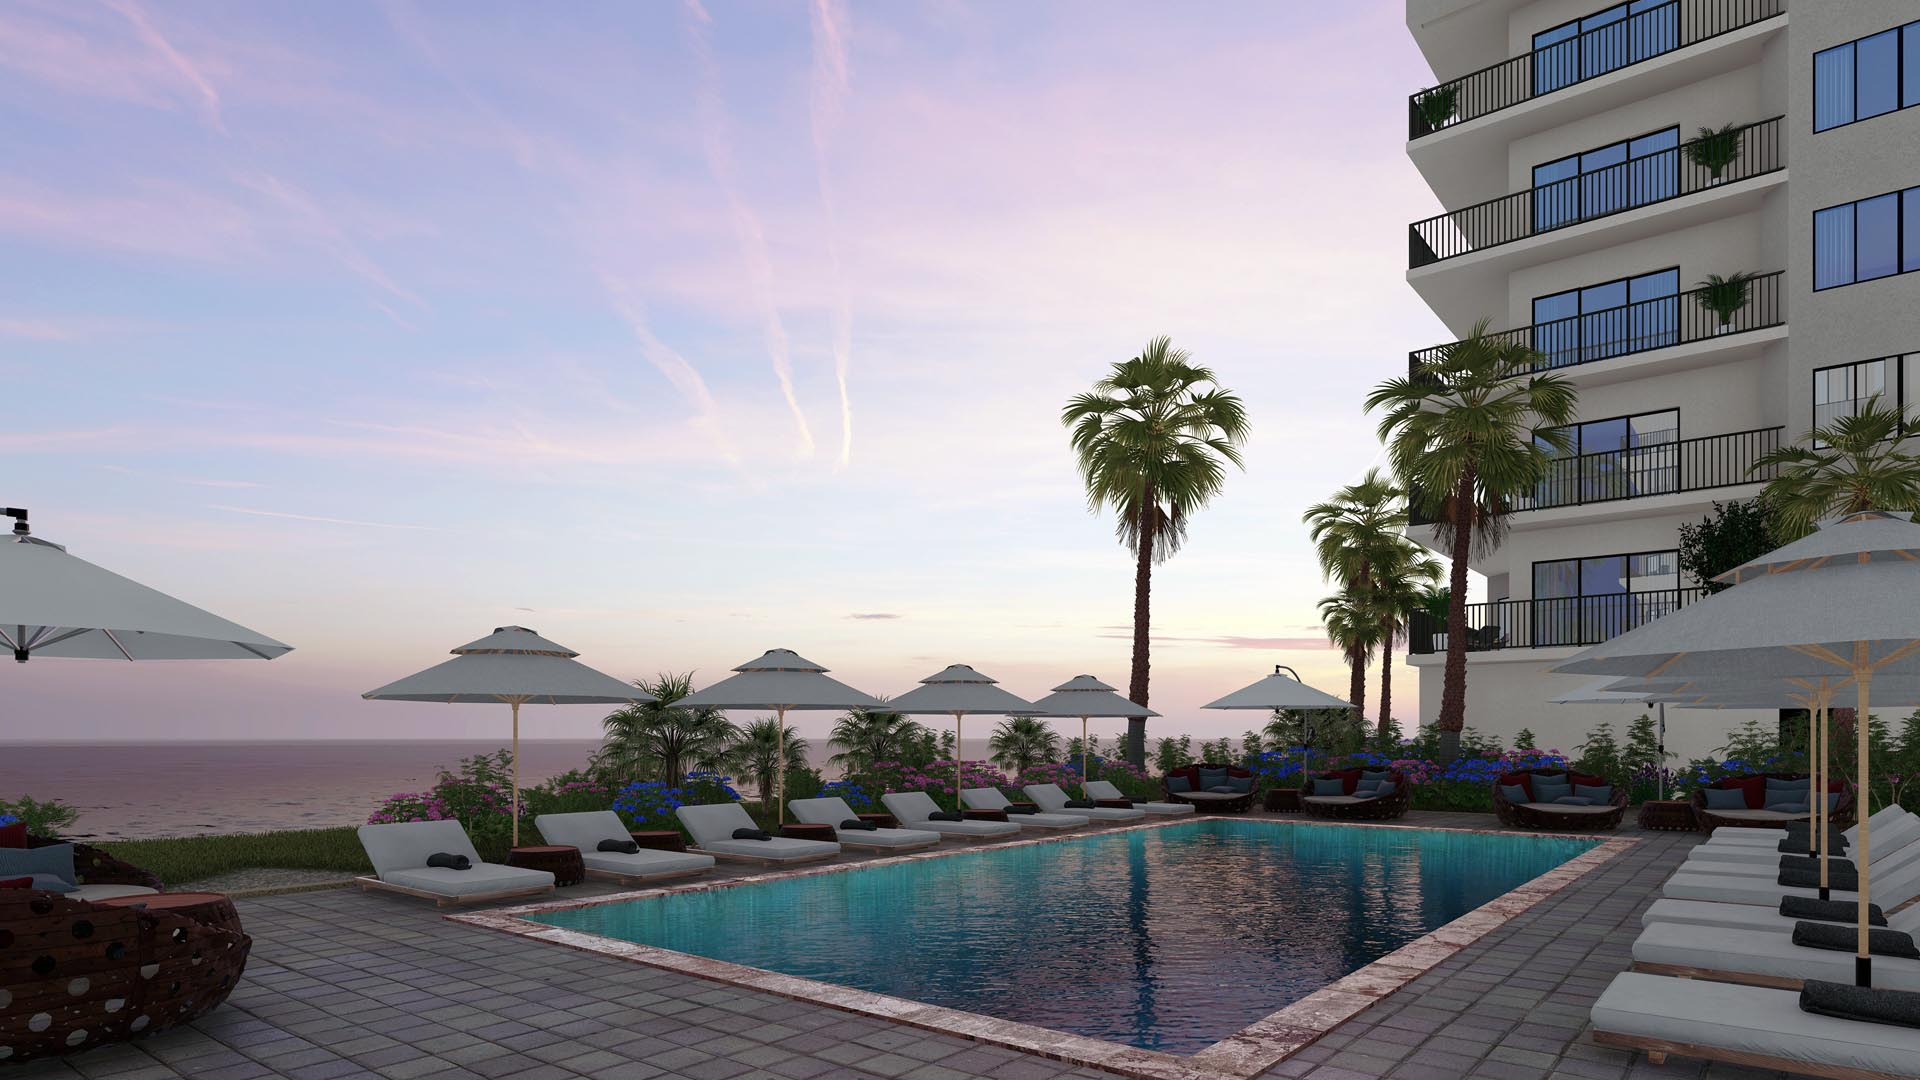 River Palms Riverfront condos in Titusville FL Pool deck rendering